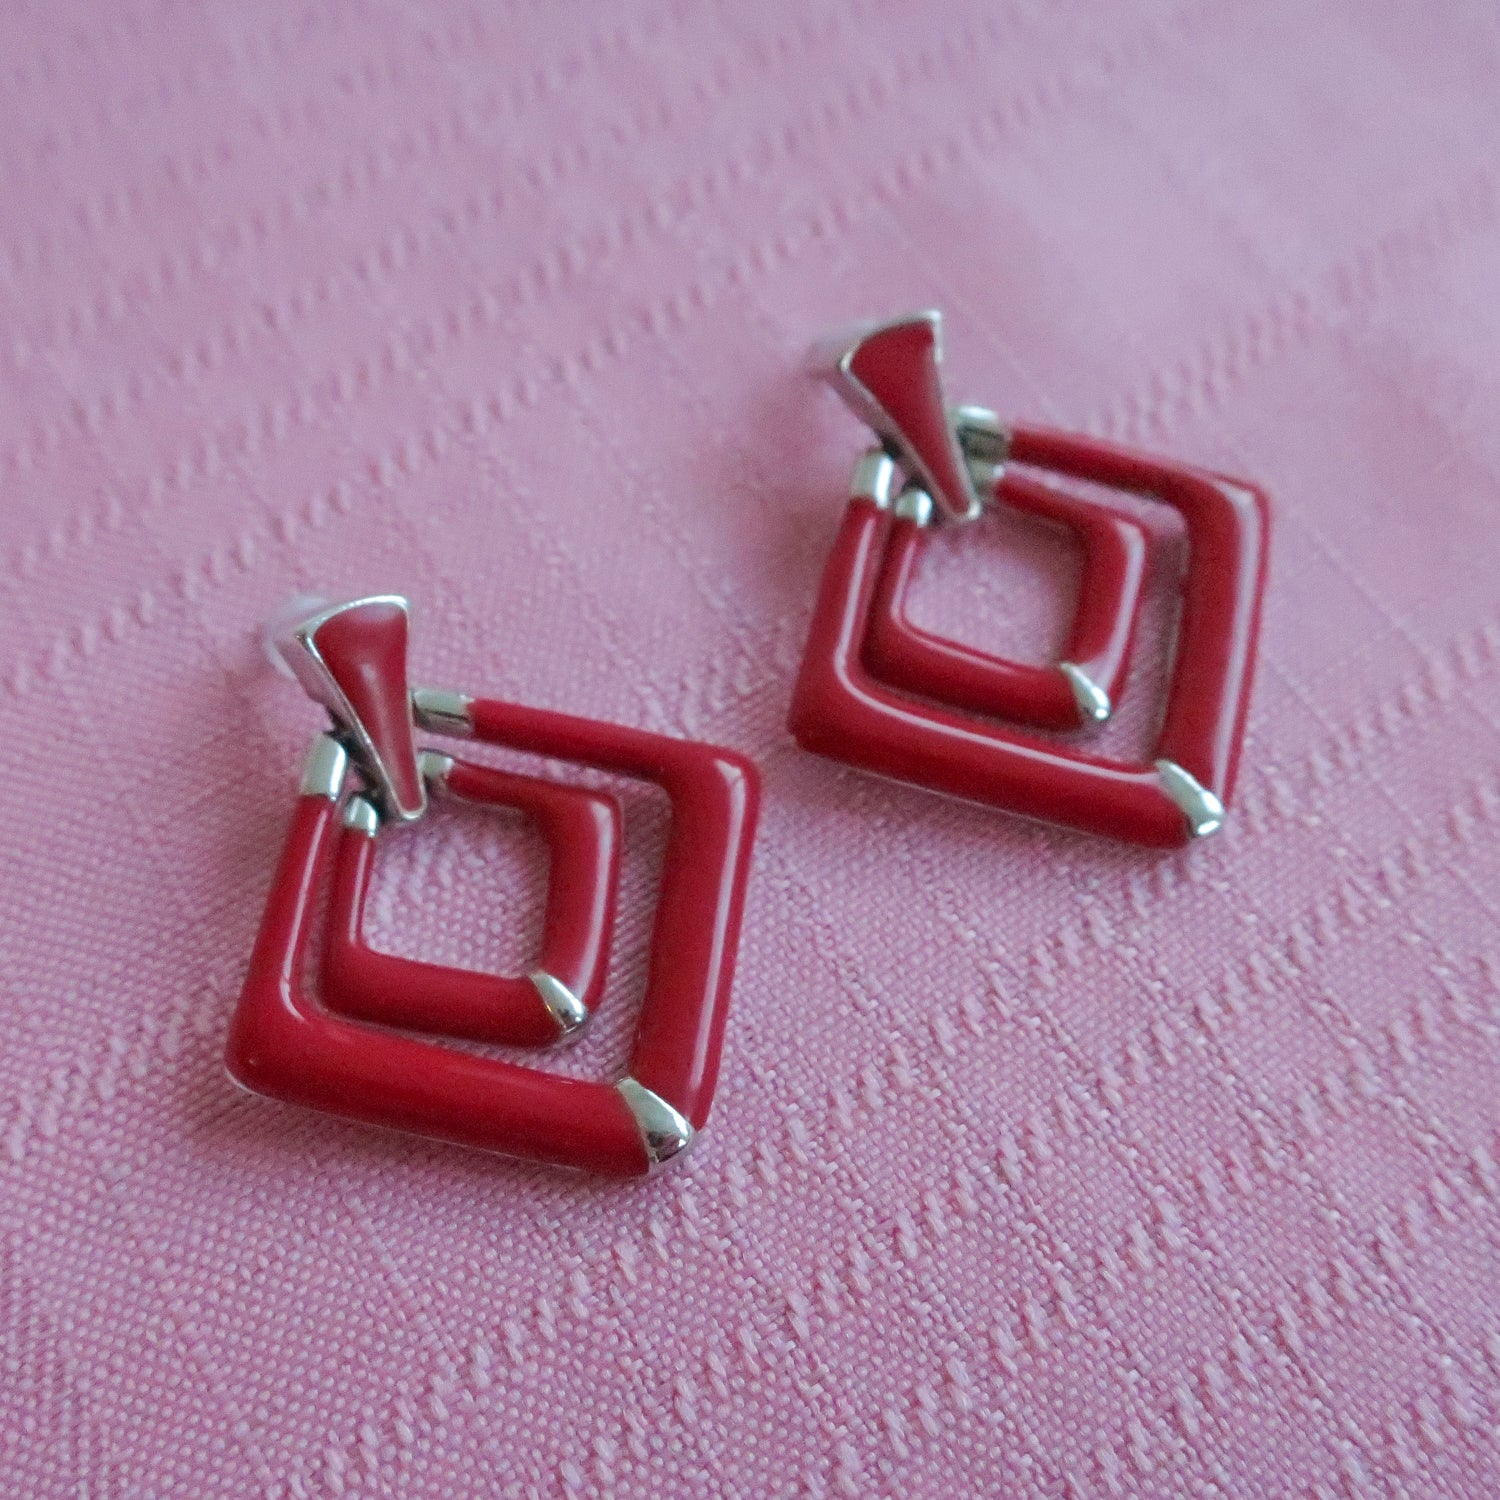 "Second Room Vintage Clothing. Vintage red & silver tone diamond shape dangle doorknocker style earrings; 1.5"" long, 1.25"" across at widest. Free North American shipping on all orders."